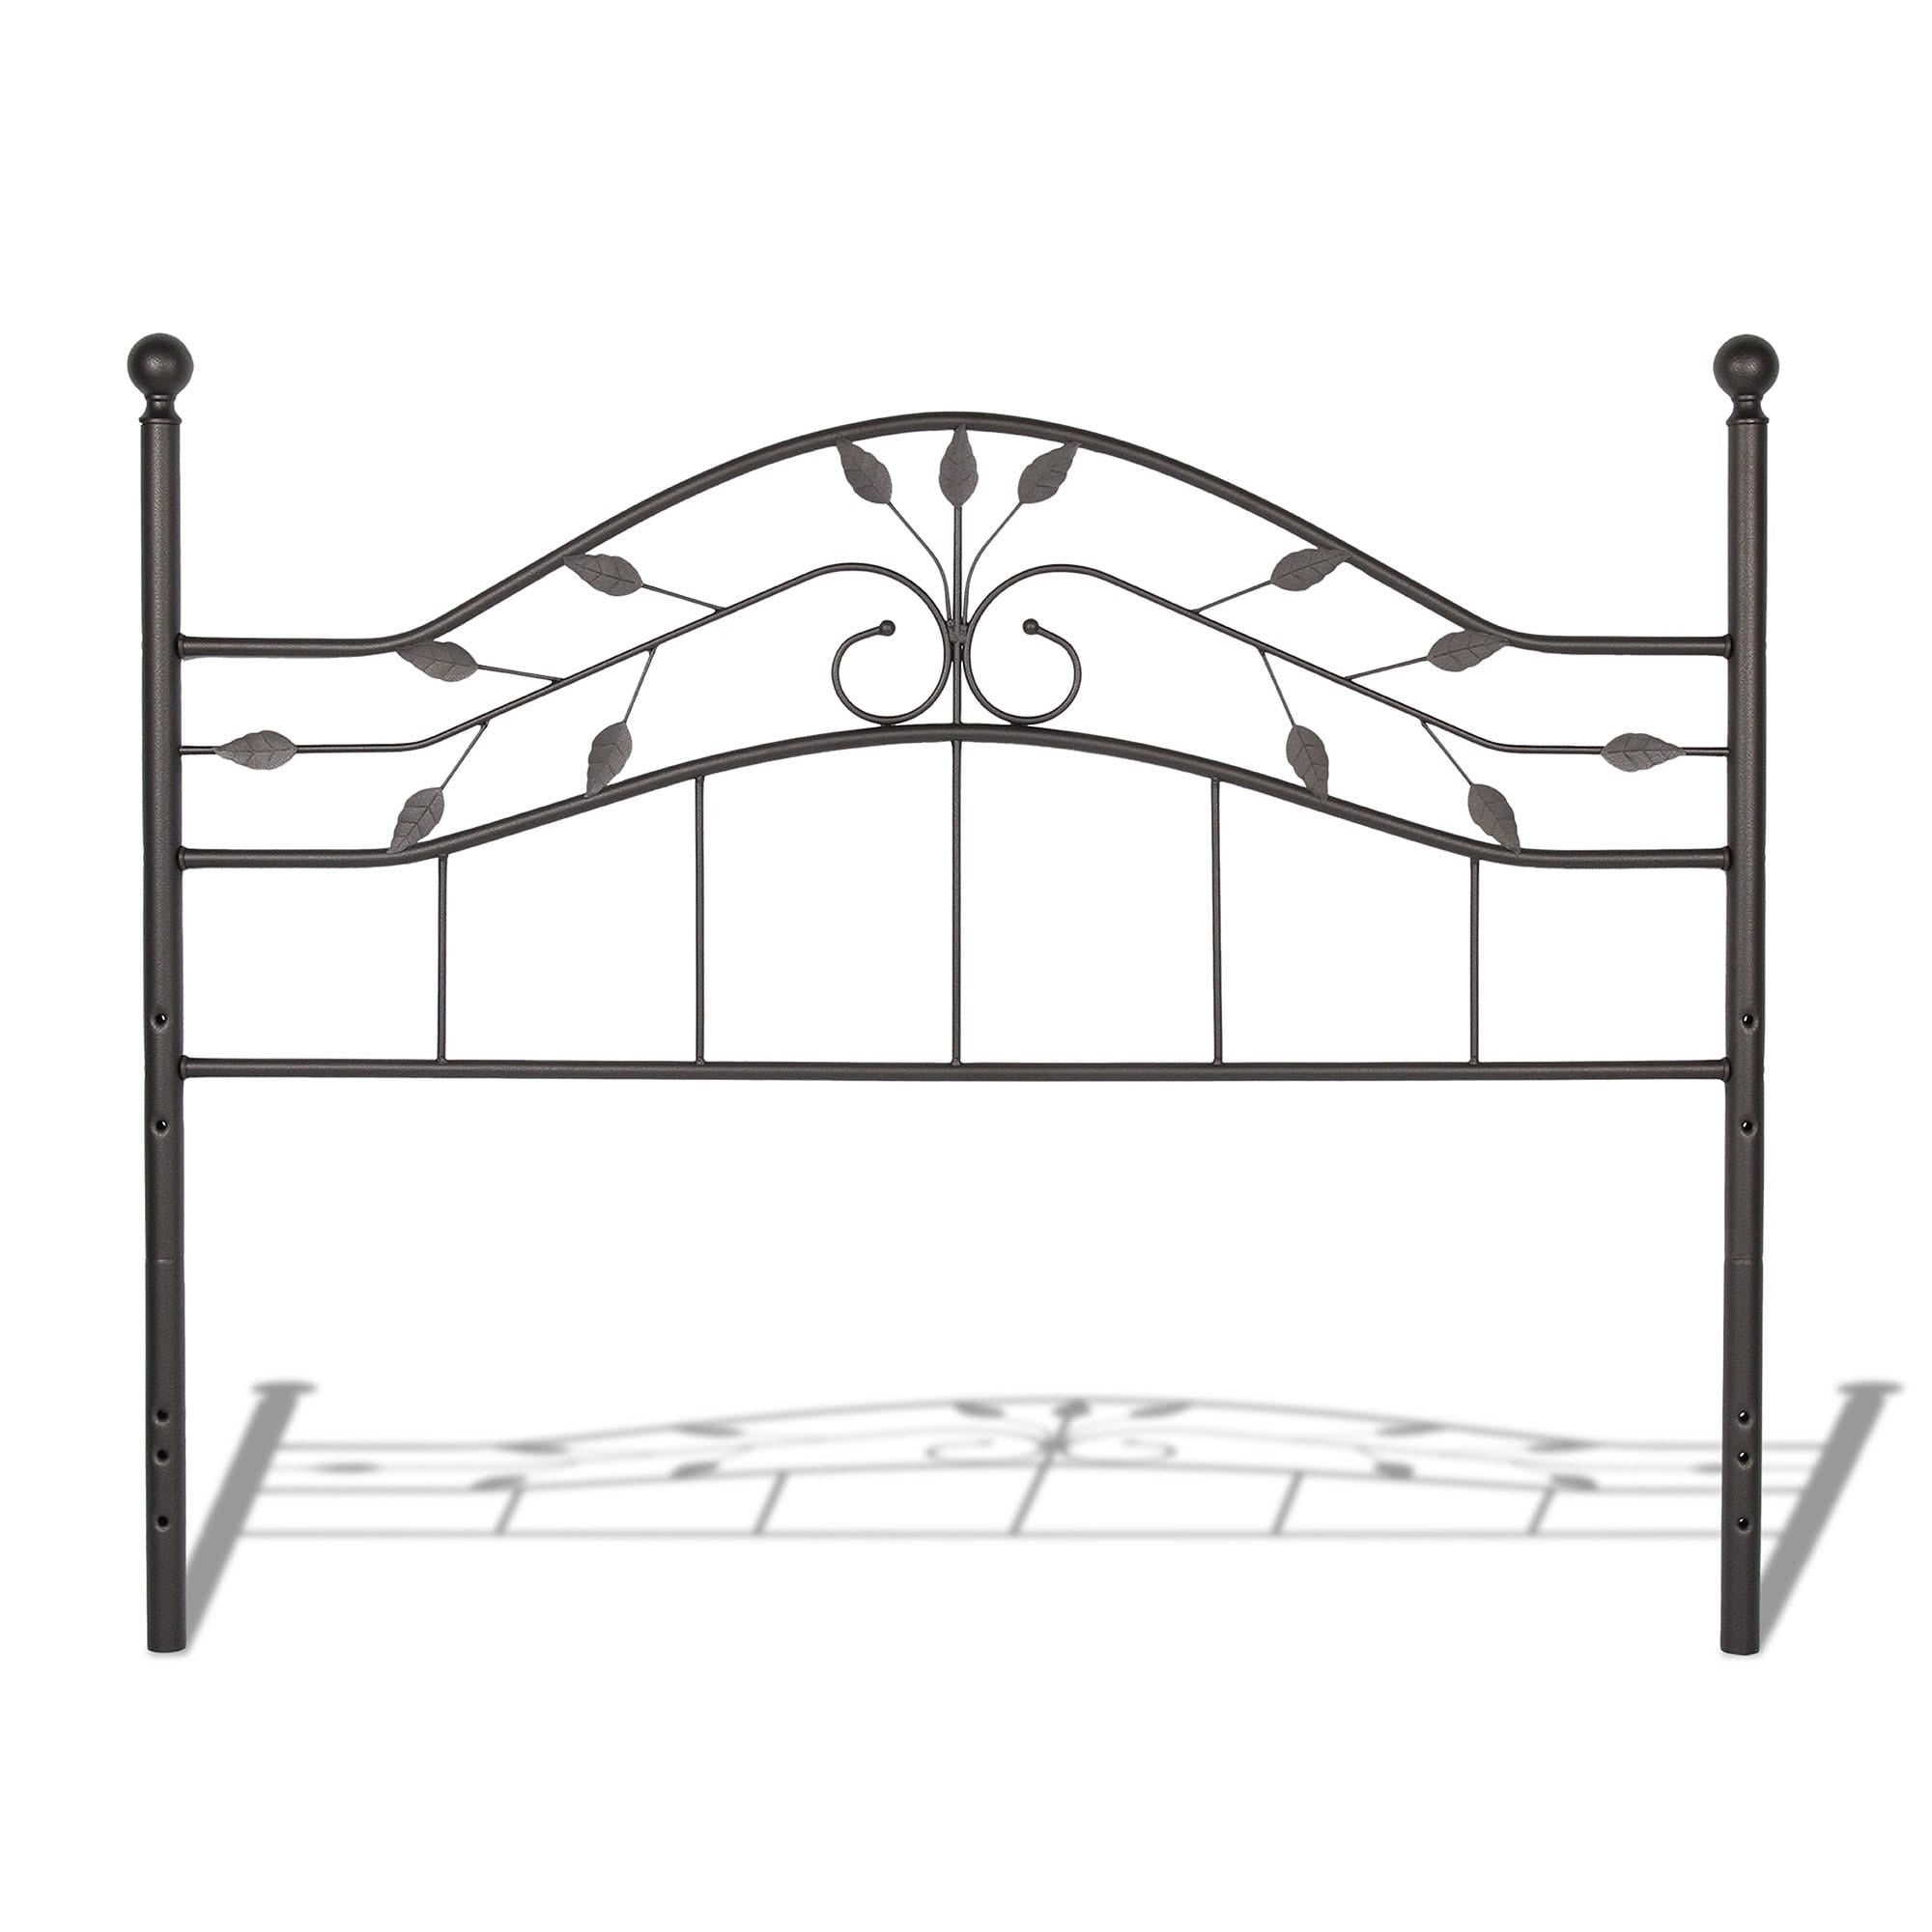 astounding beds and bed antique chic wrought wood size metal headboards iron king decoration headboard queen bathroom copper for footboard bedroom ikea ideas